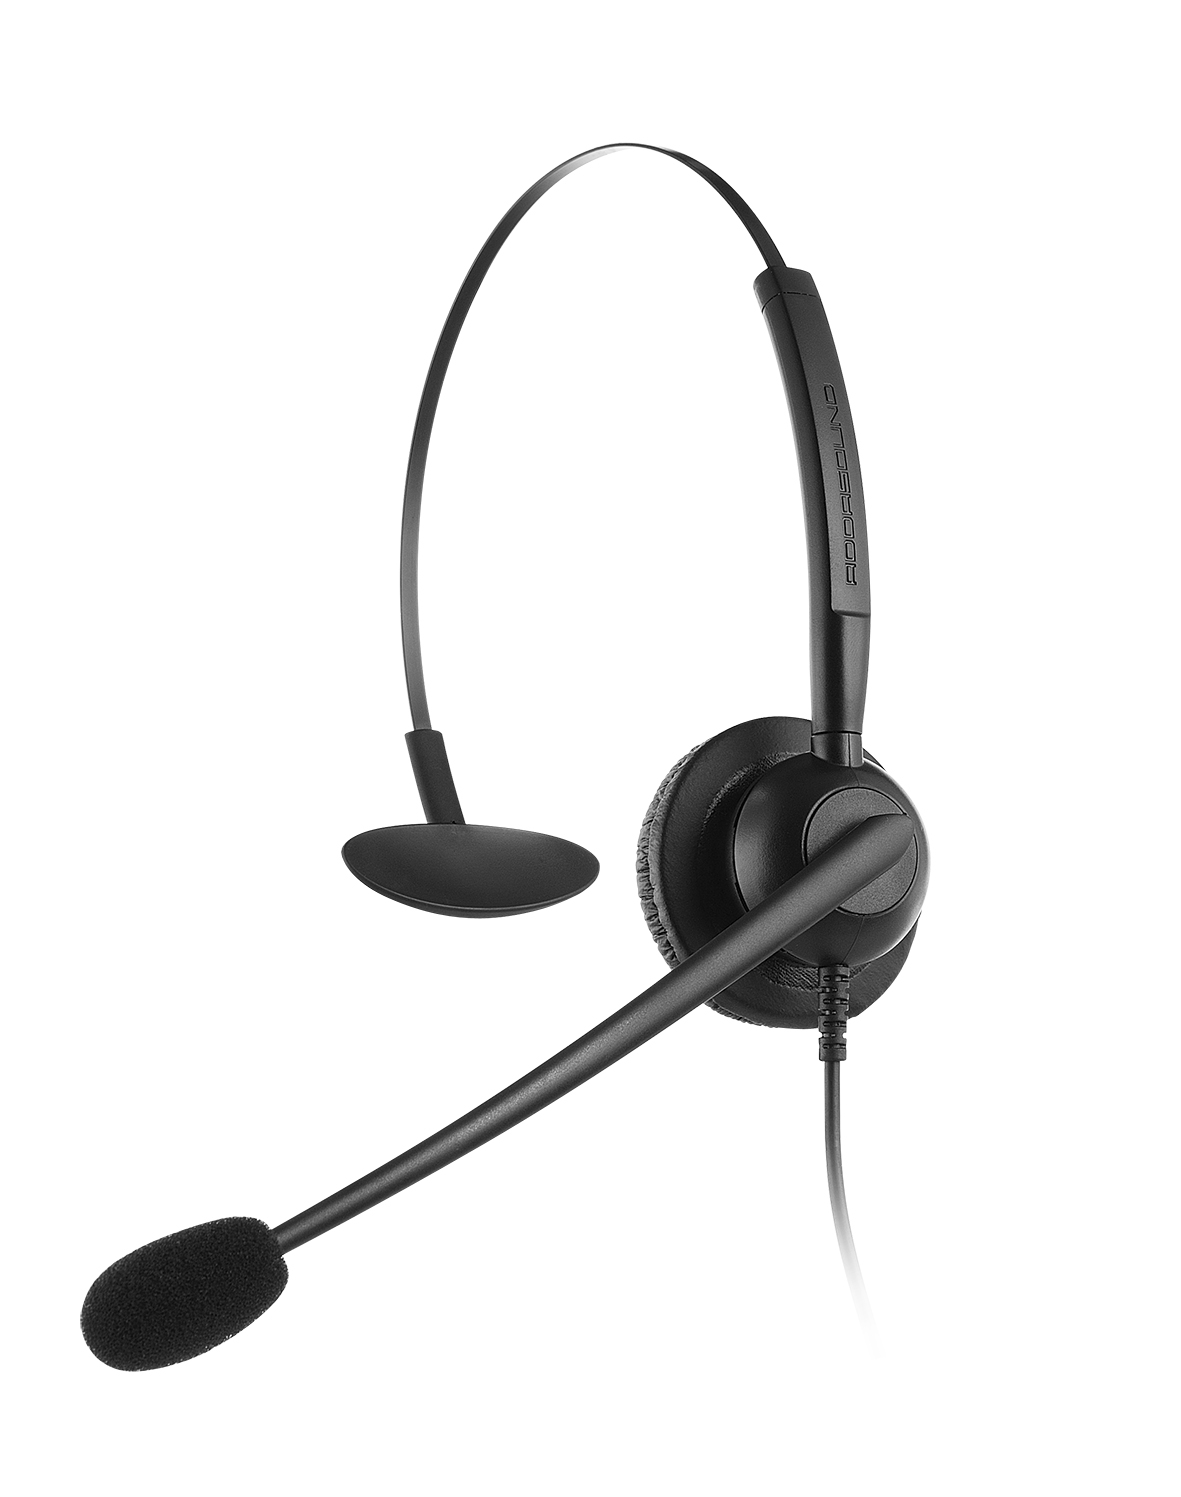 Crystal 2700/270S Call Center Headsets with Noise Canceling